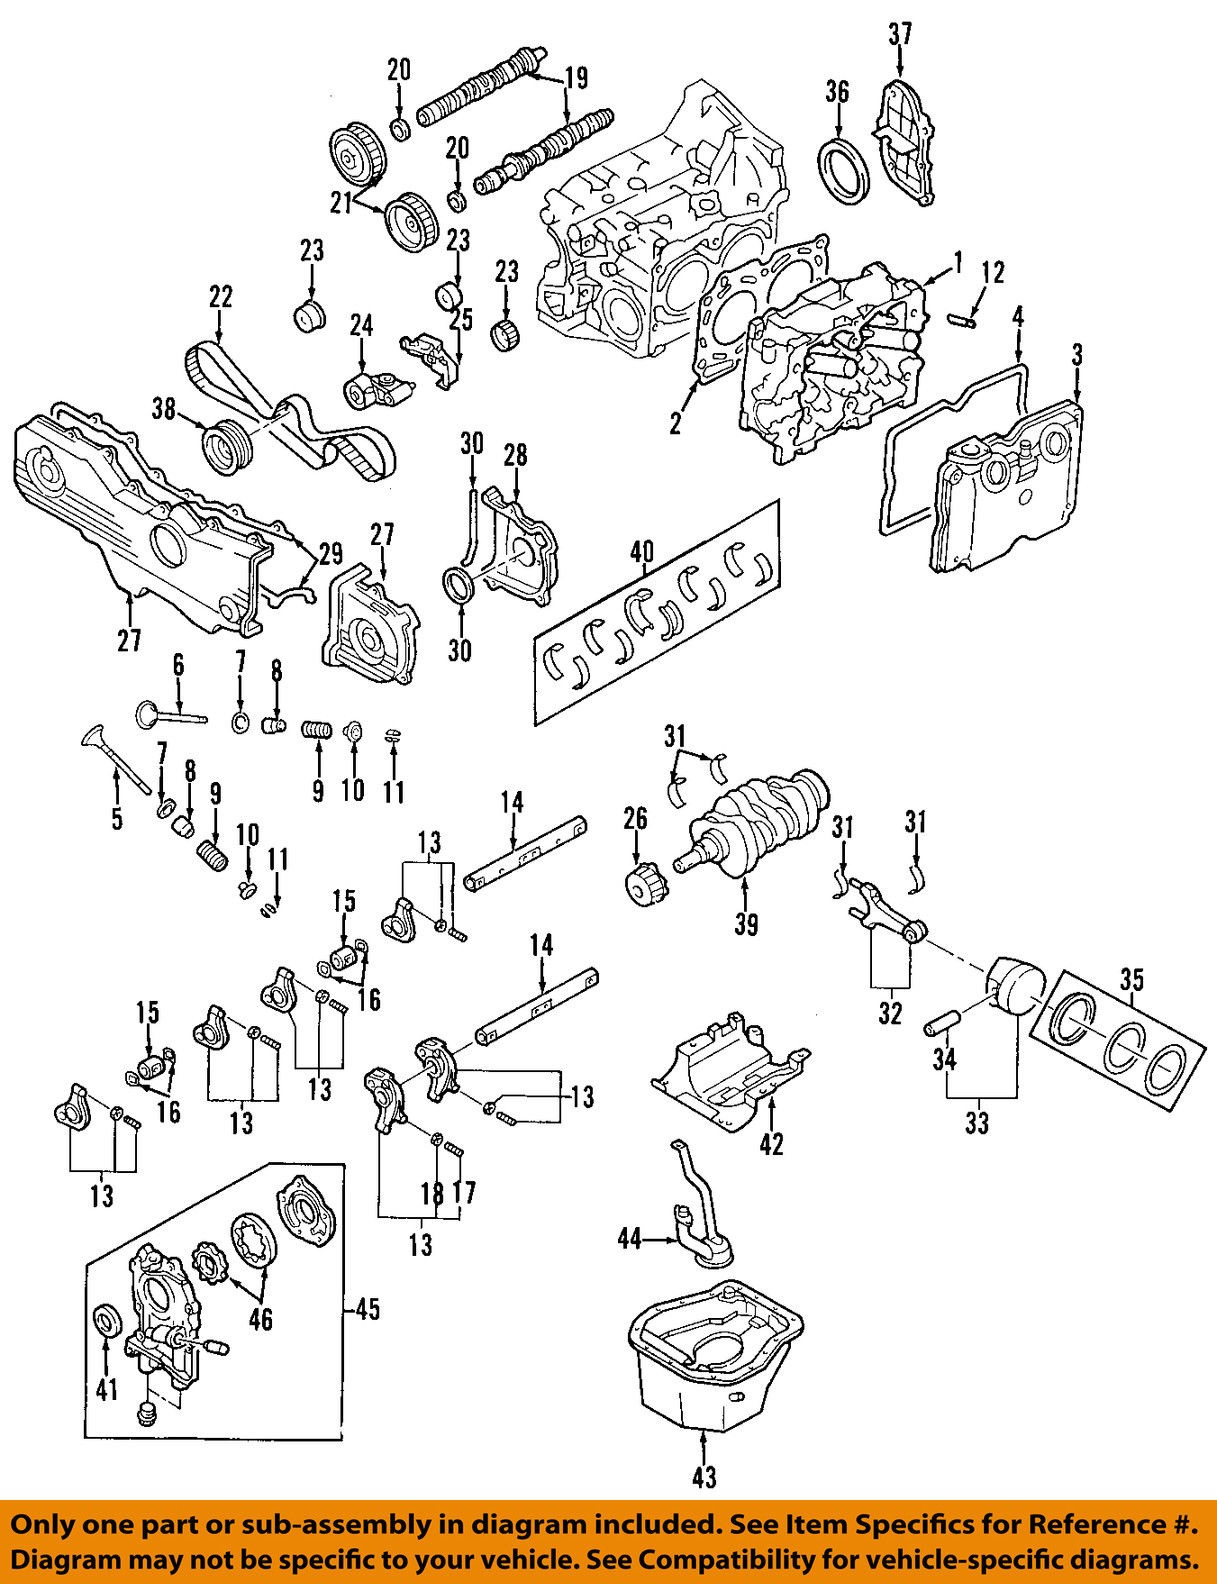 subaru impreza wrx sti engine ford focus exhaust system diagram